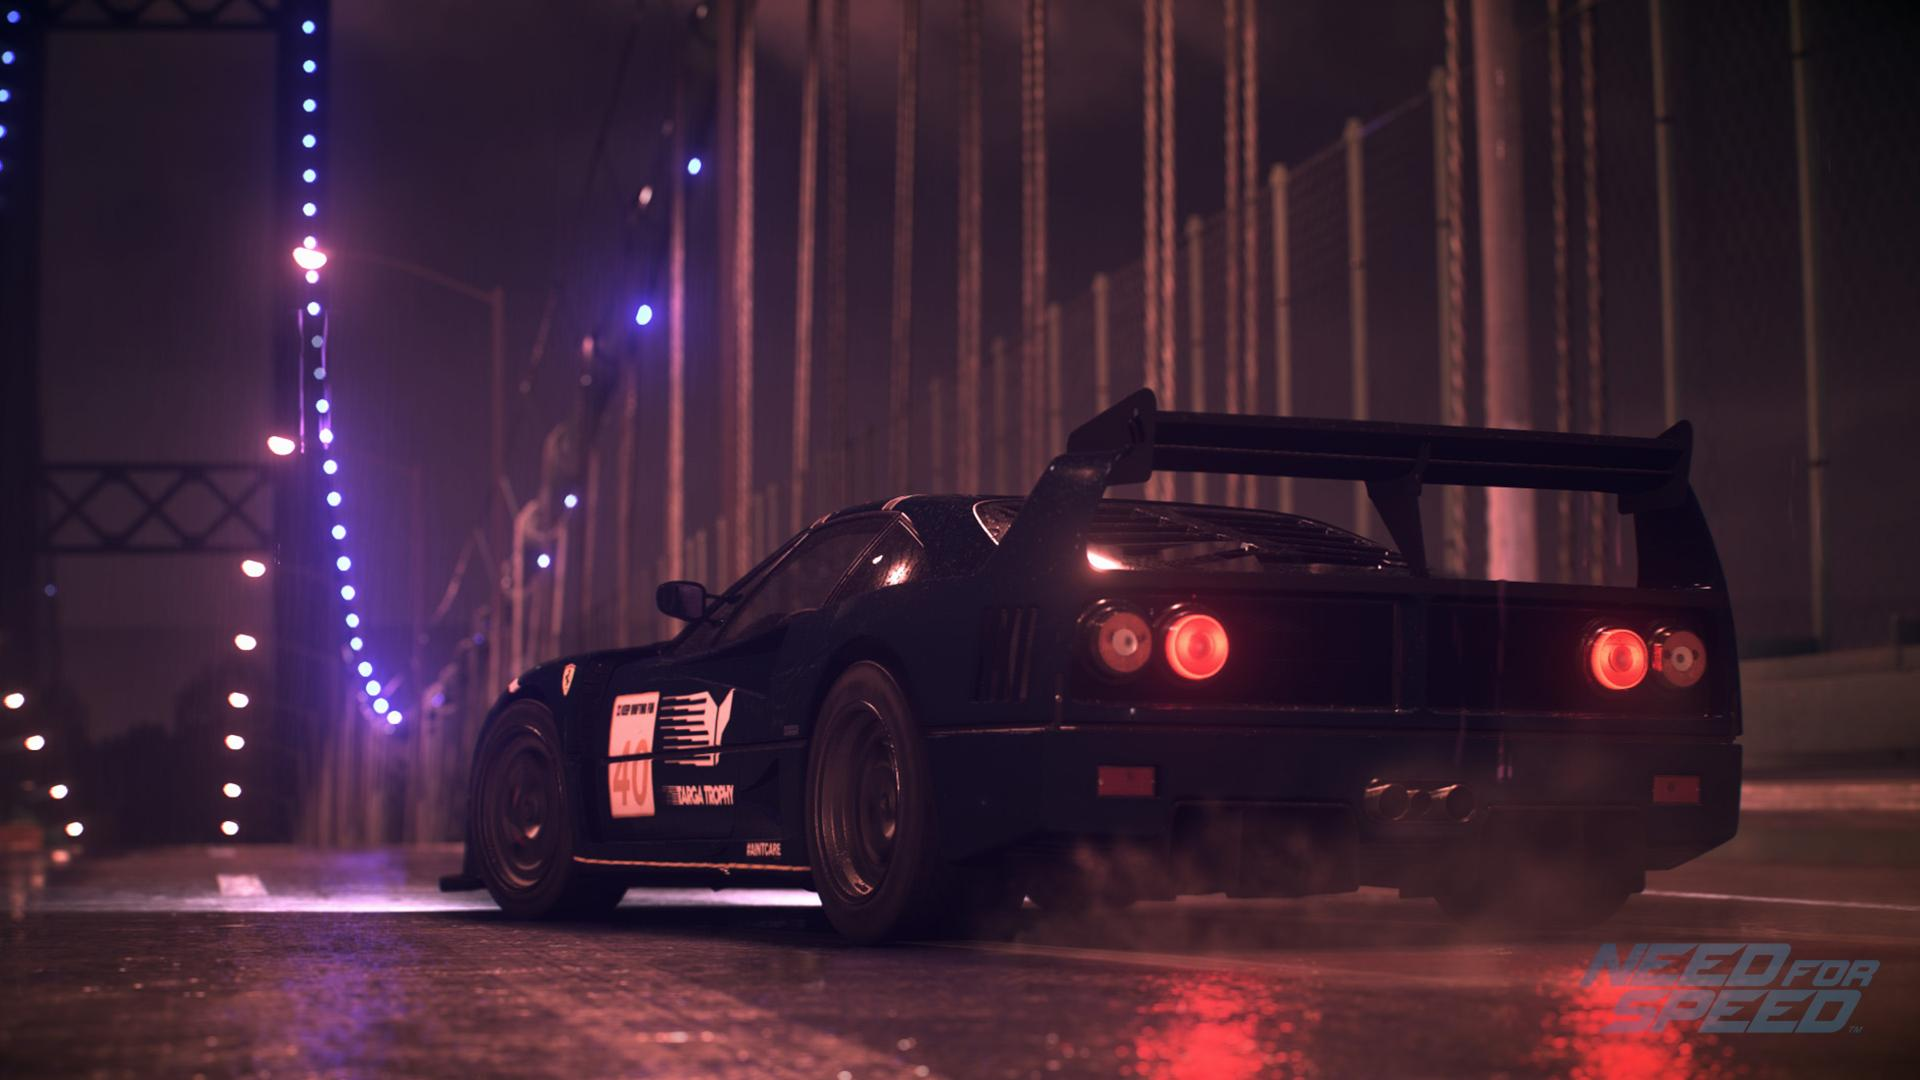 need for speed (2015) wallpapers, pictures, images